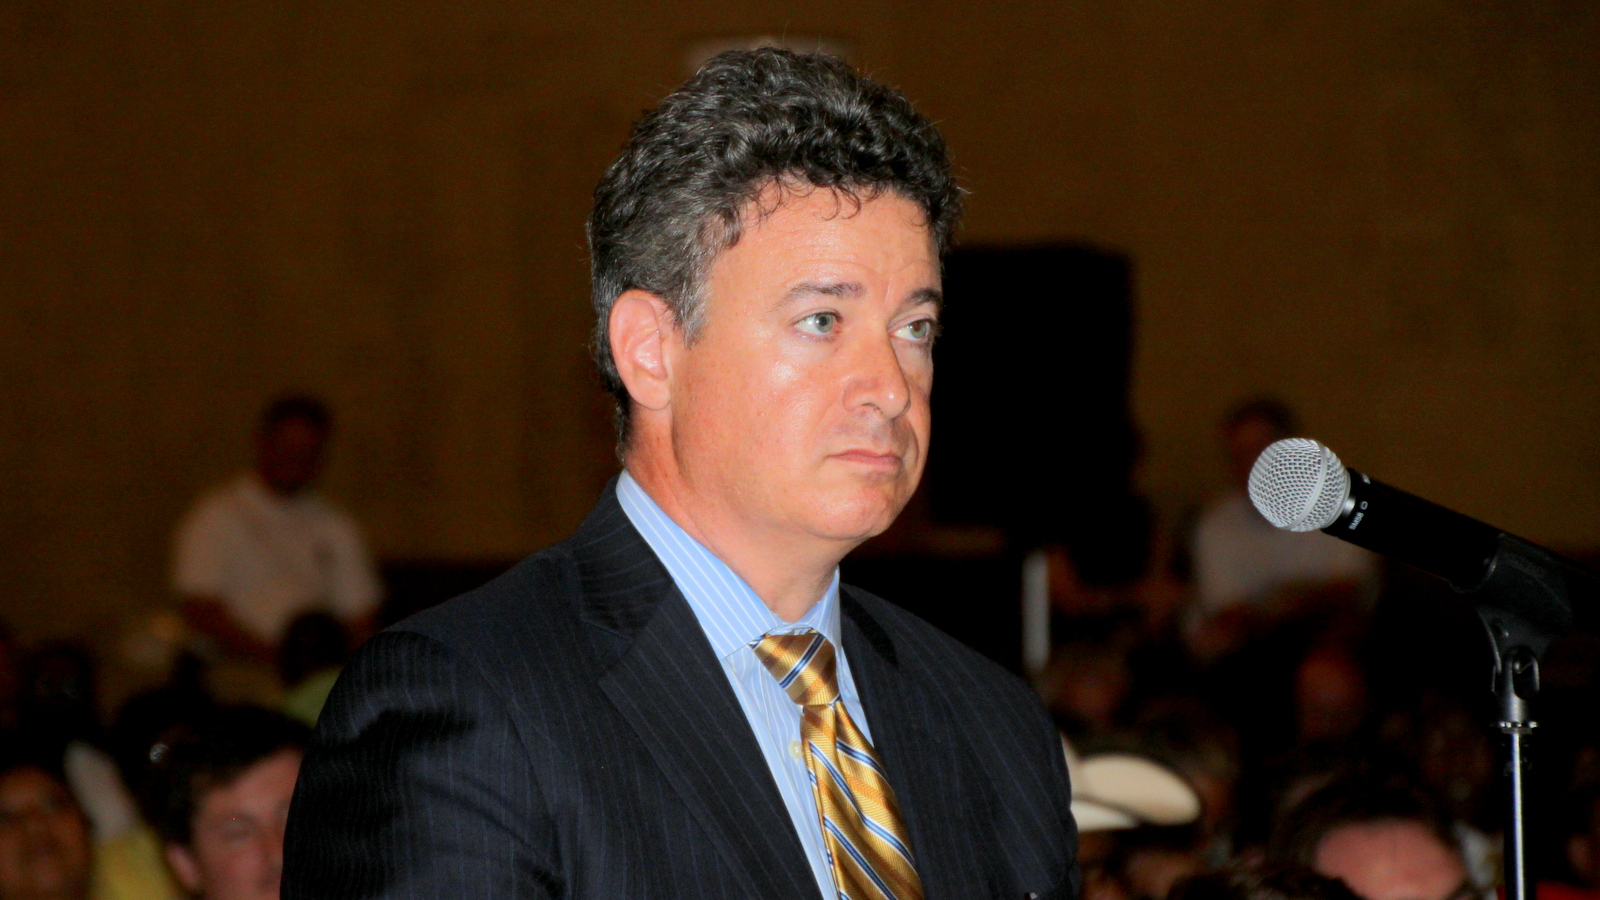 Jon Laria, the attorney for Sagamore Development. (Fern Shen)